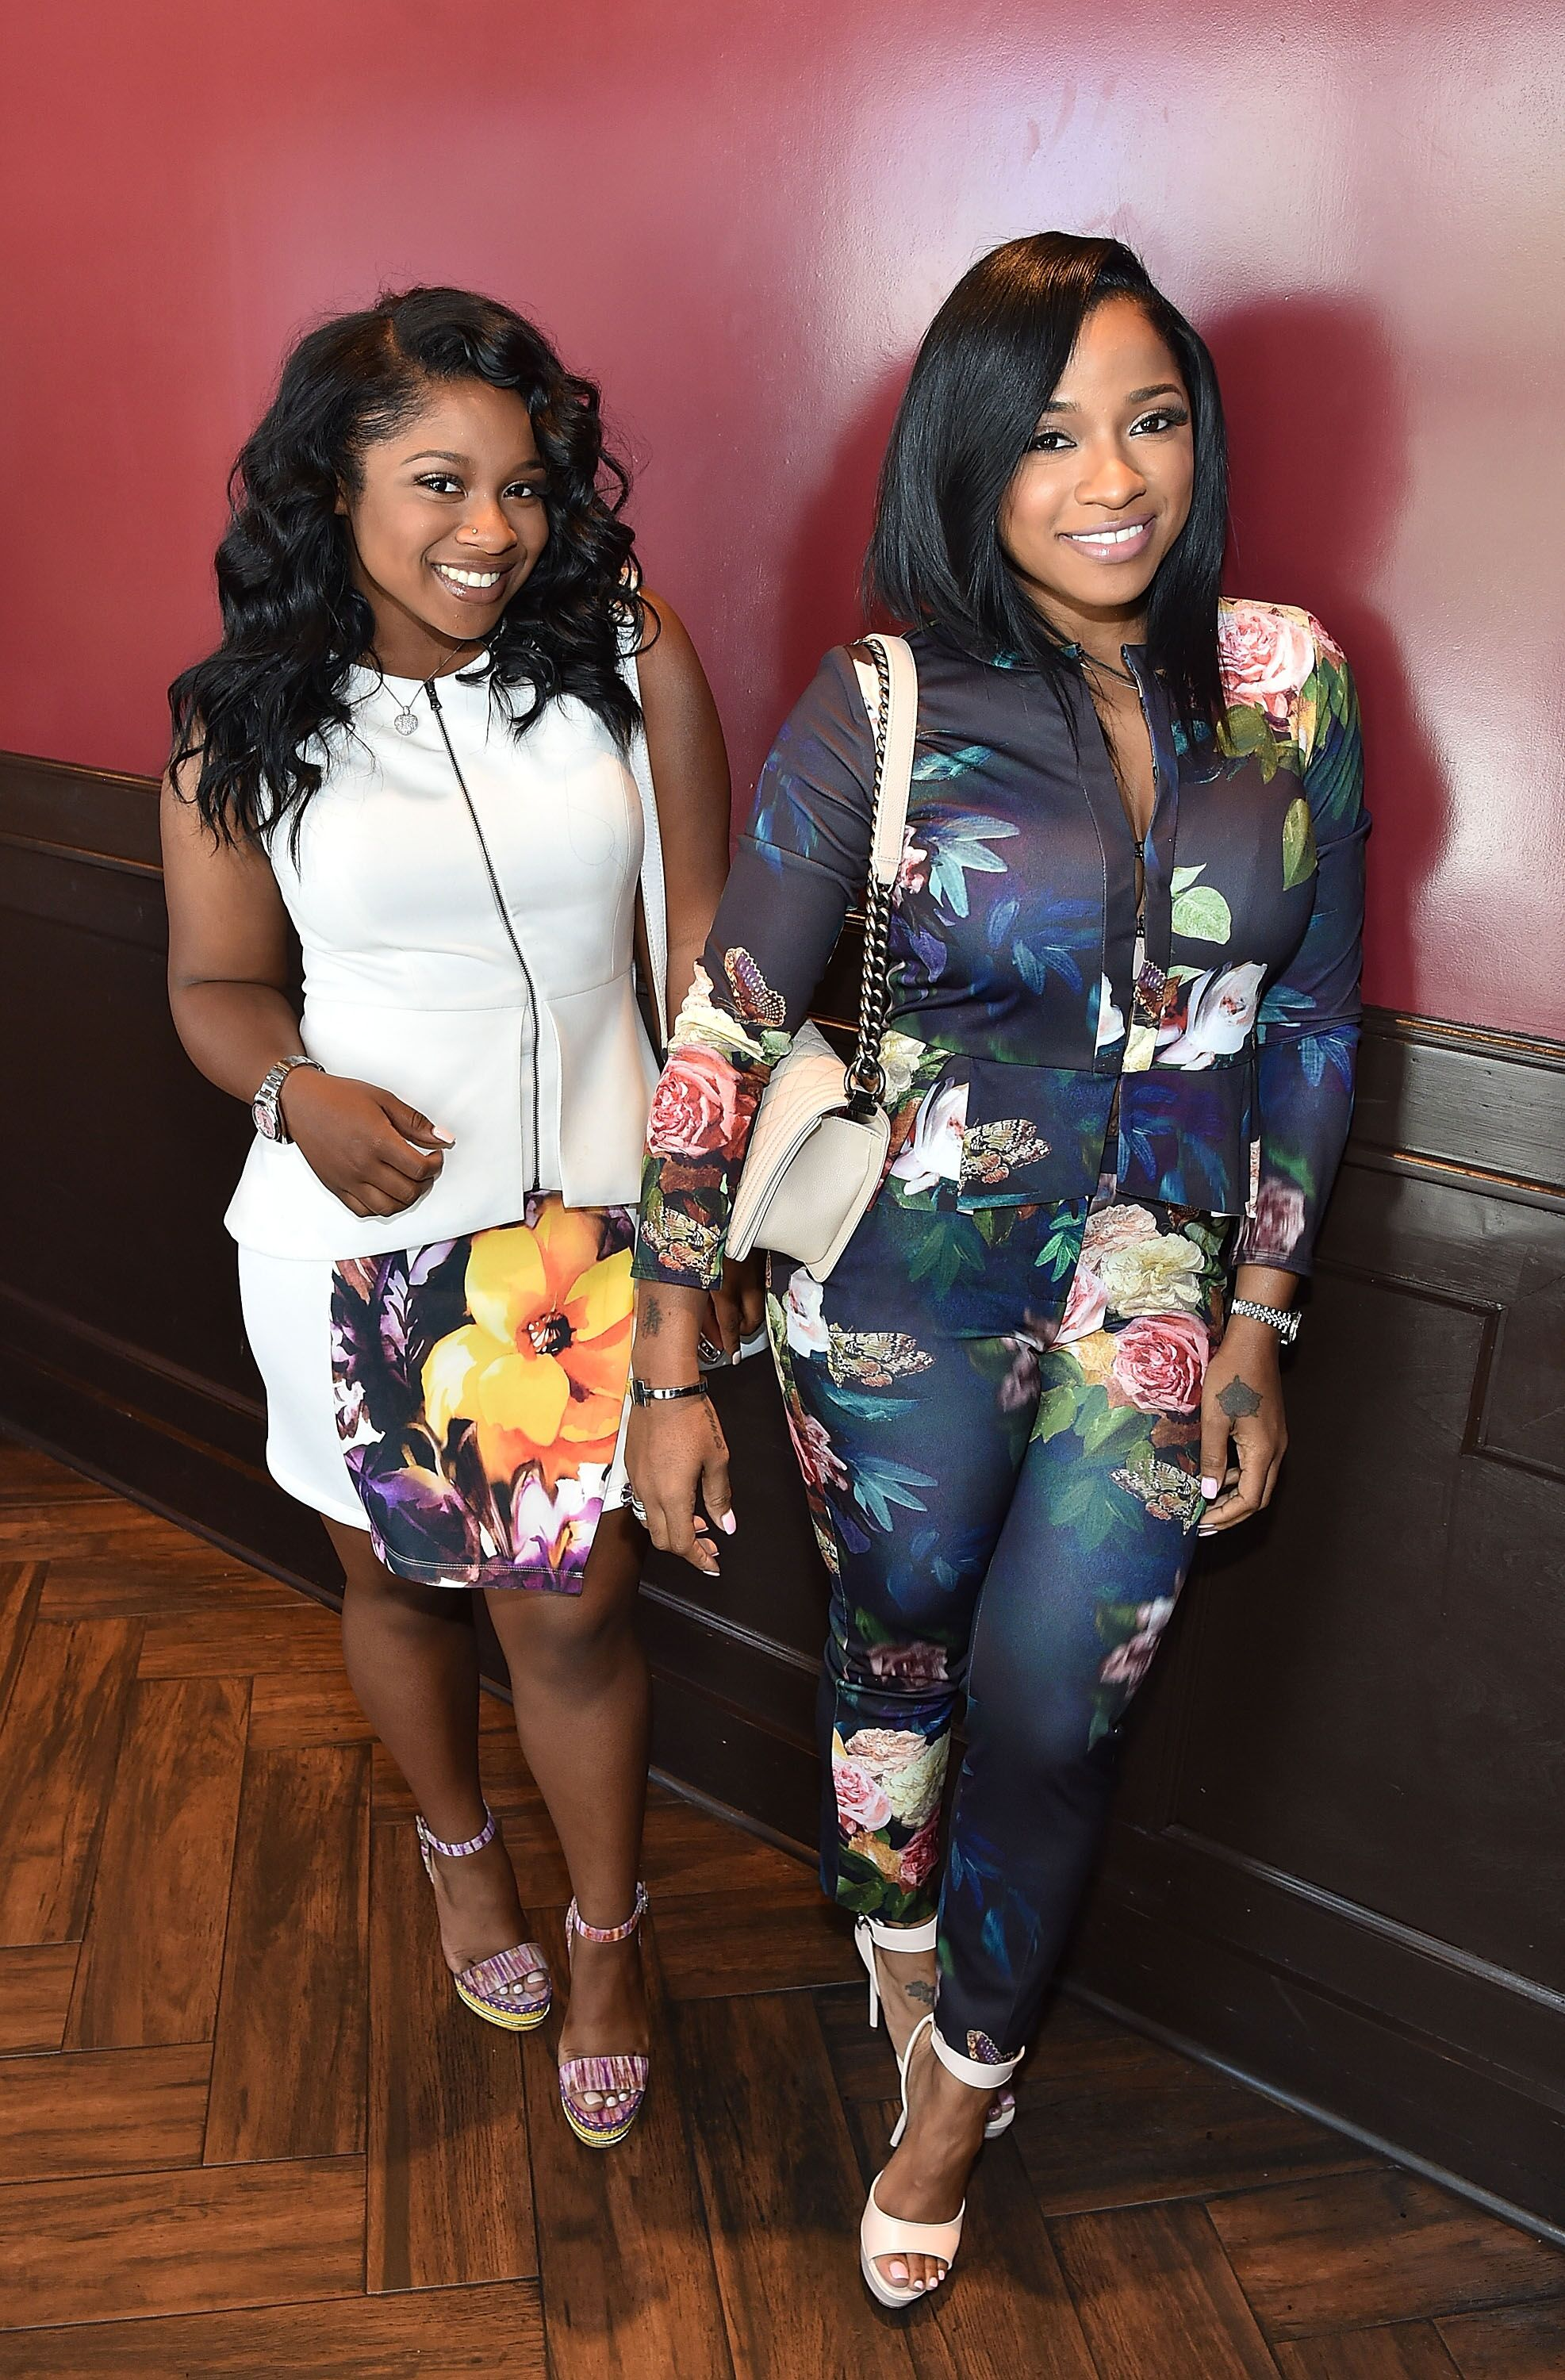 Reginae Carter and Toya Wright attend Tiny's 3rd Annual Mother Daughter Brunch Pageant at Scales 925 Restaurant on May 8, 2016 in Atlanta, Georgia | Photo: Getty Images